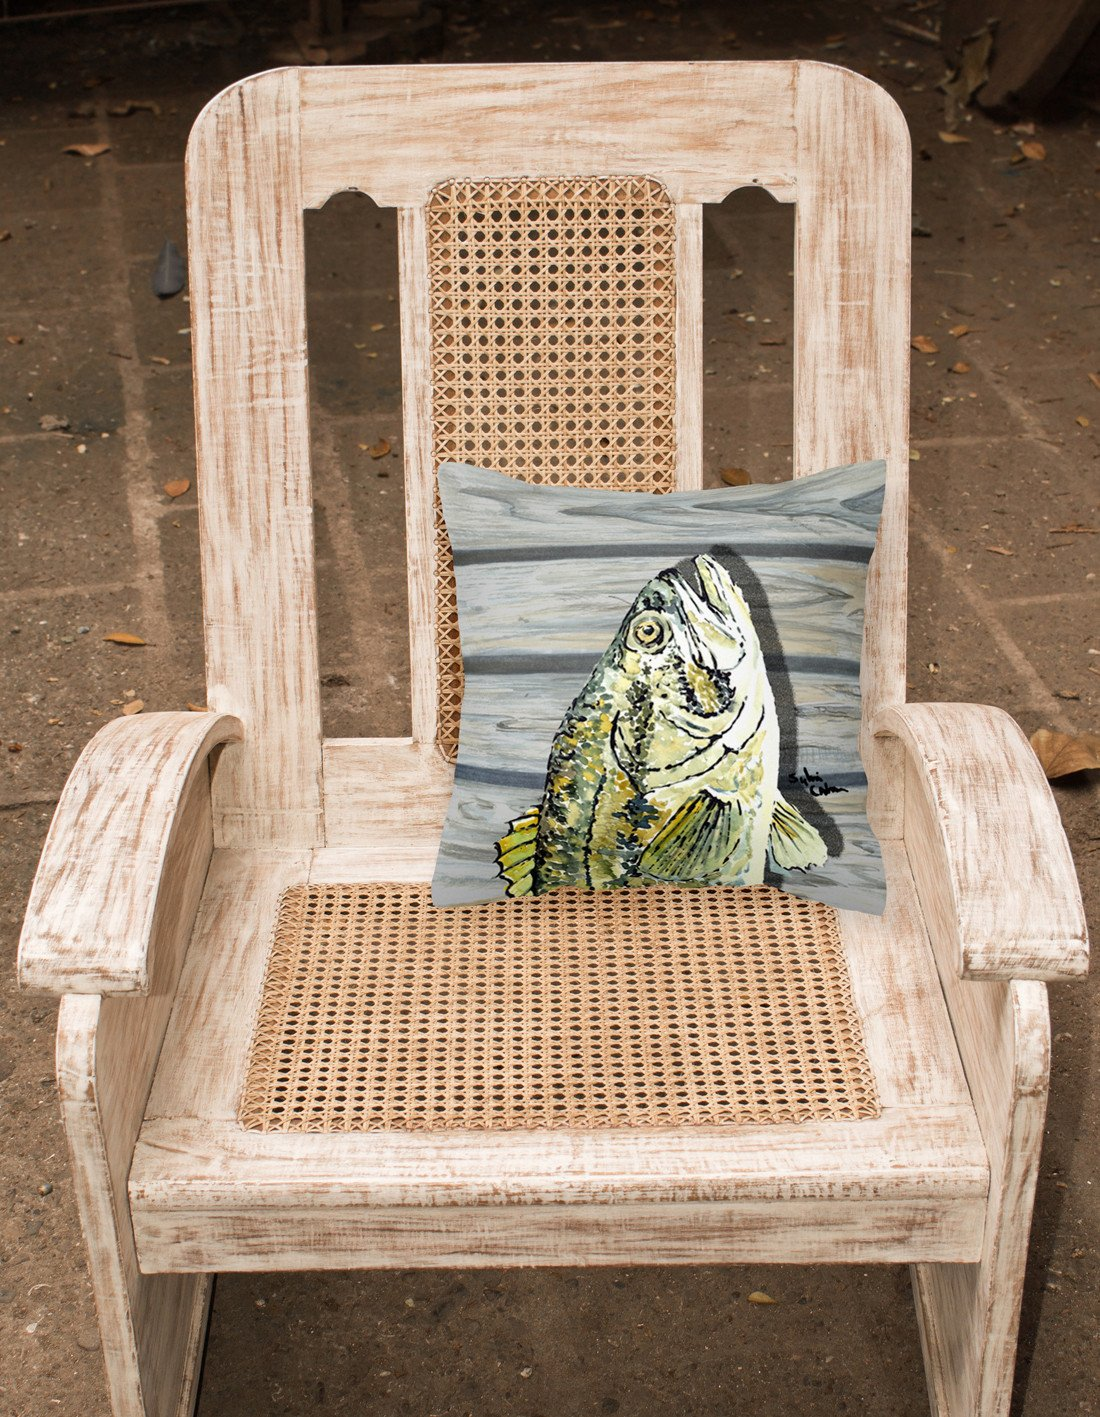 Fish Bass Small Mouth Fabric Decorative Pillow 8493PW1414 by Caroline's Treasures